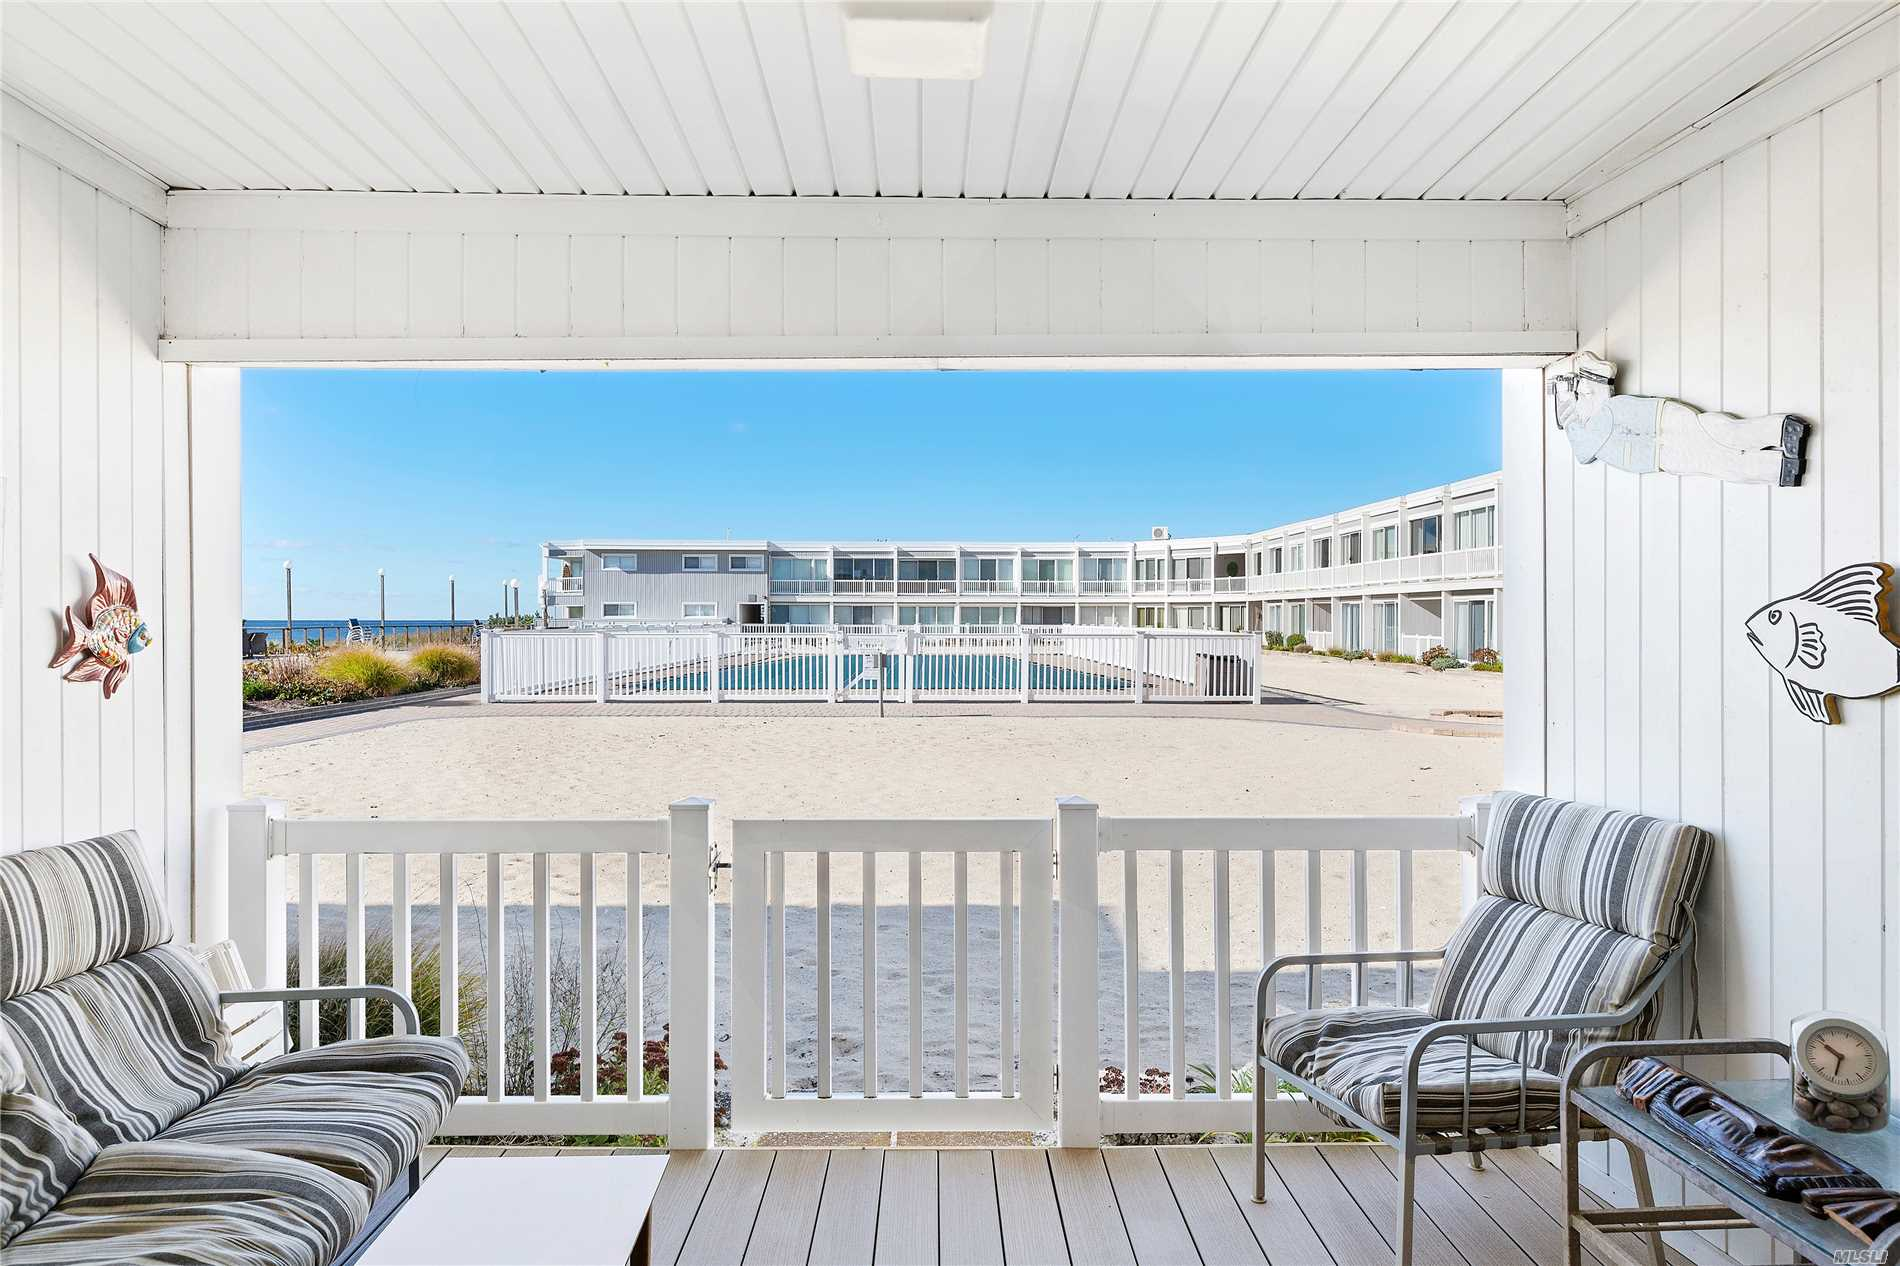 Enjoy This Oceanfront, One-Bedroom Apartment With Breathtaking Views. Step Out To An Expansive Promenade, Pristine Beach And An Olympic-Size Pool. Complex Amenities Include Gym, Recreation/Card Room, Elevator. Bay-Beach Access Across The Road. Motivated Seller!